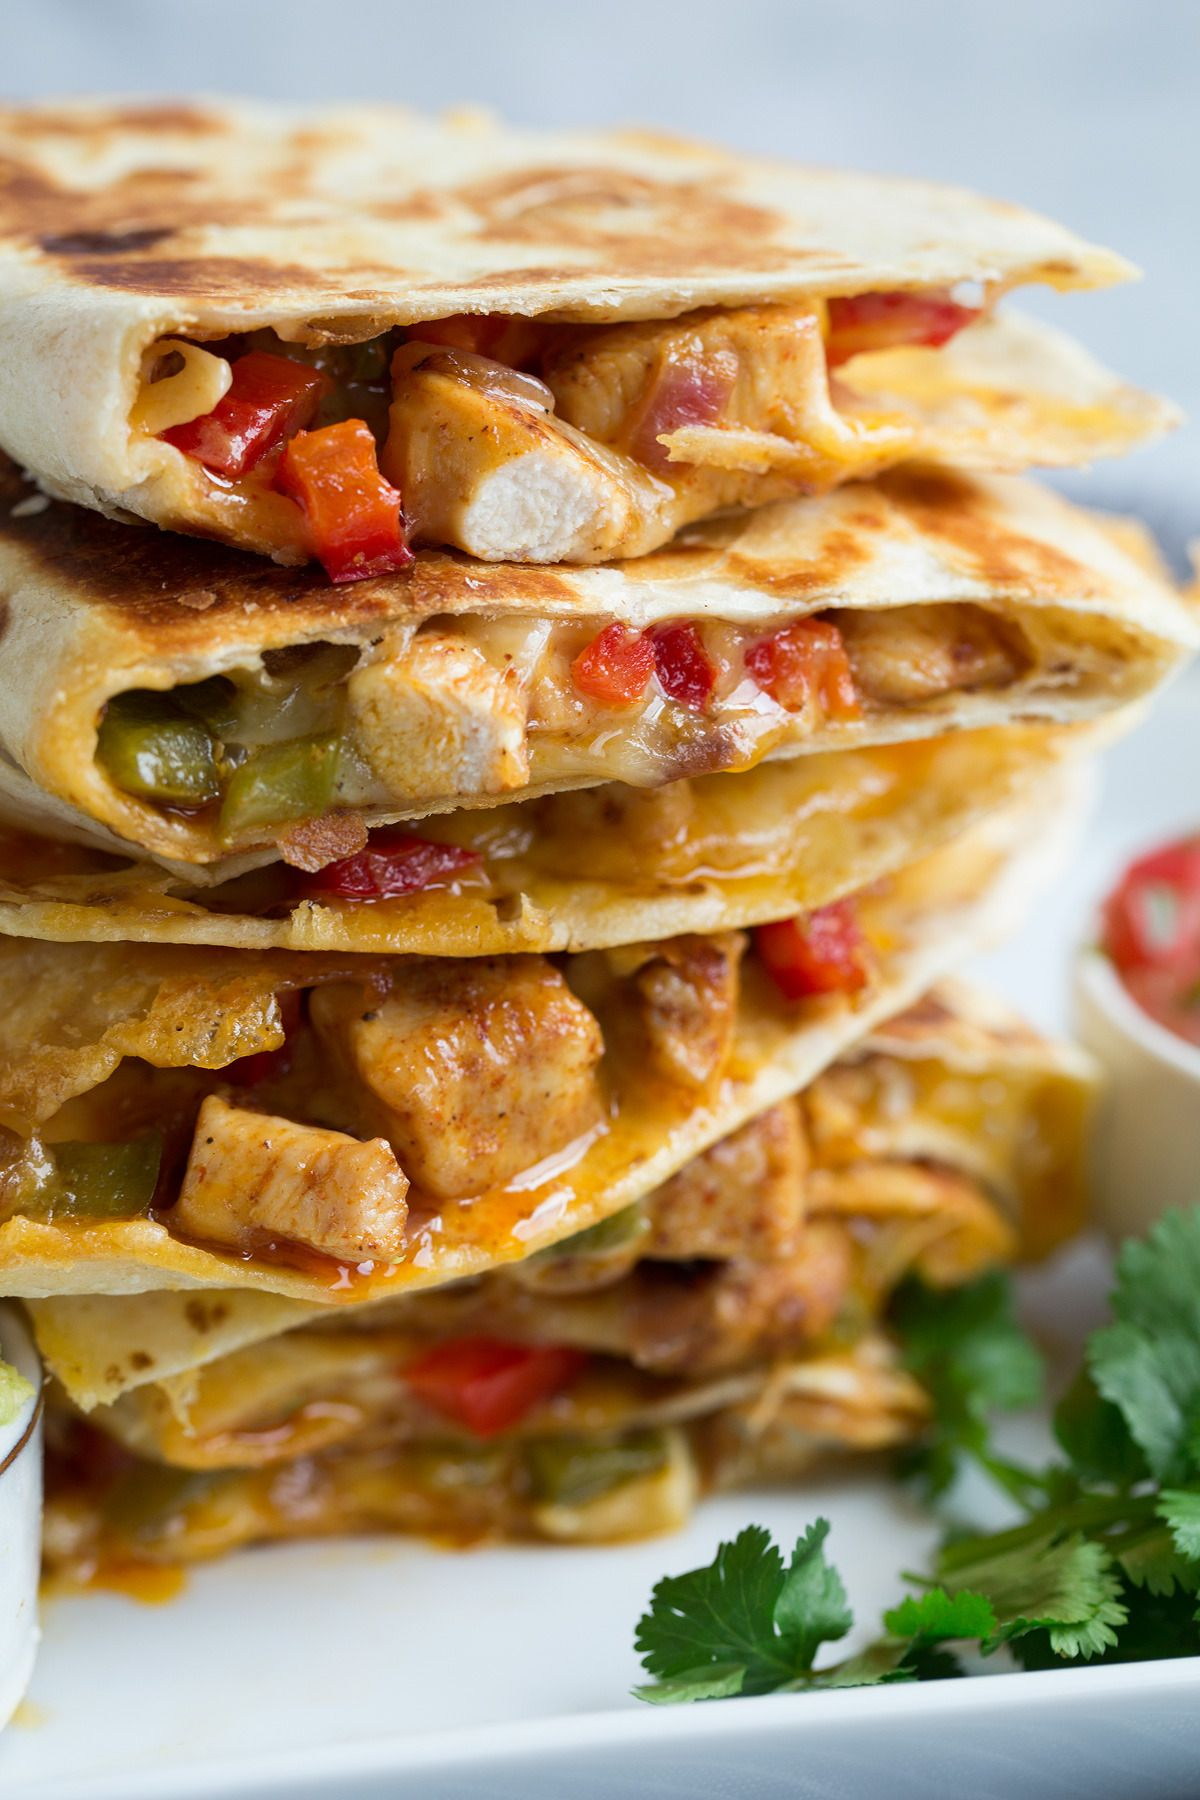 Quesadillas (chicken fajitas style) -